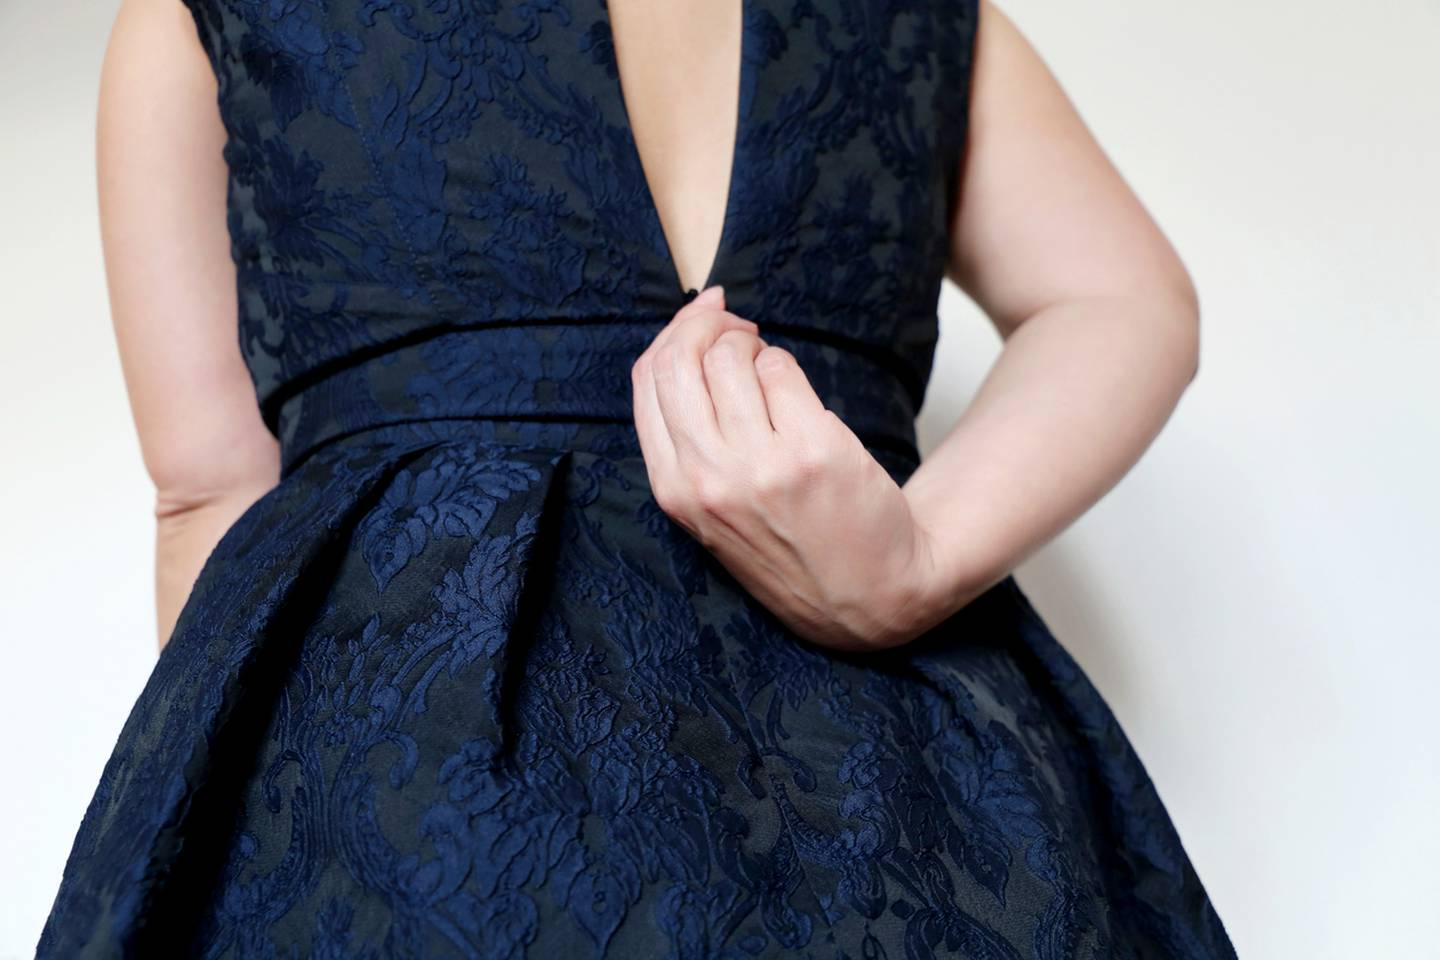 Generic photo of someone trying on a dress